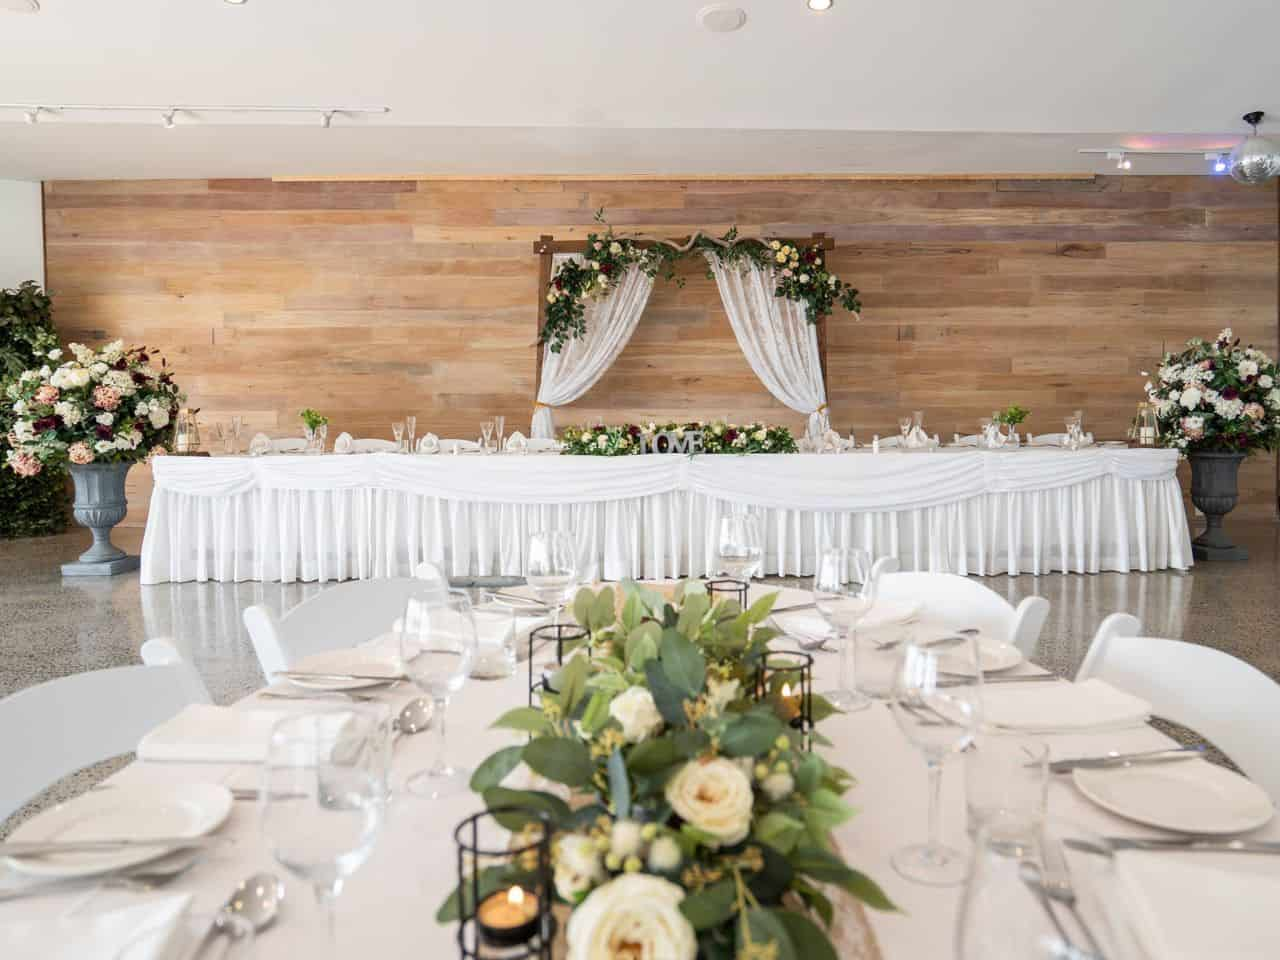 Hamptons wedding venue